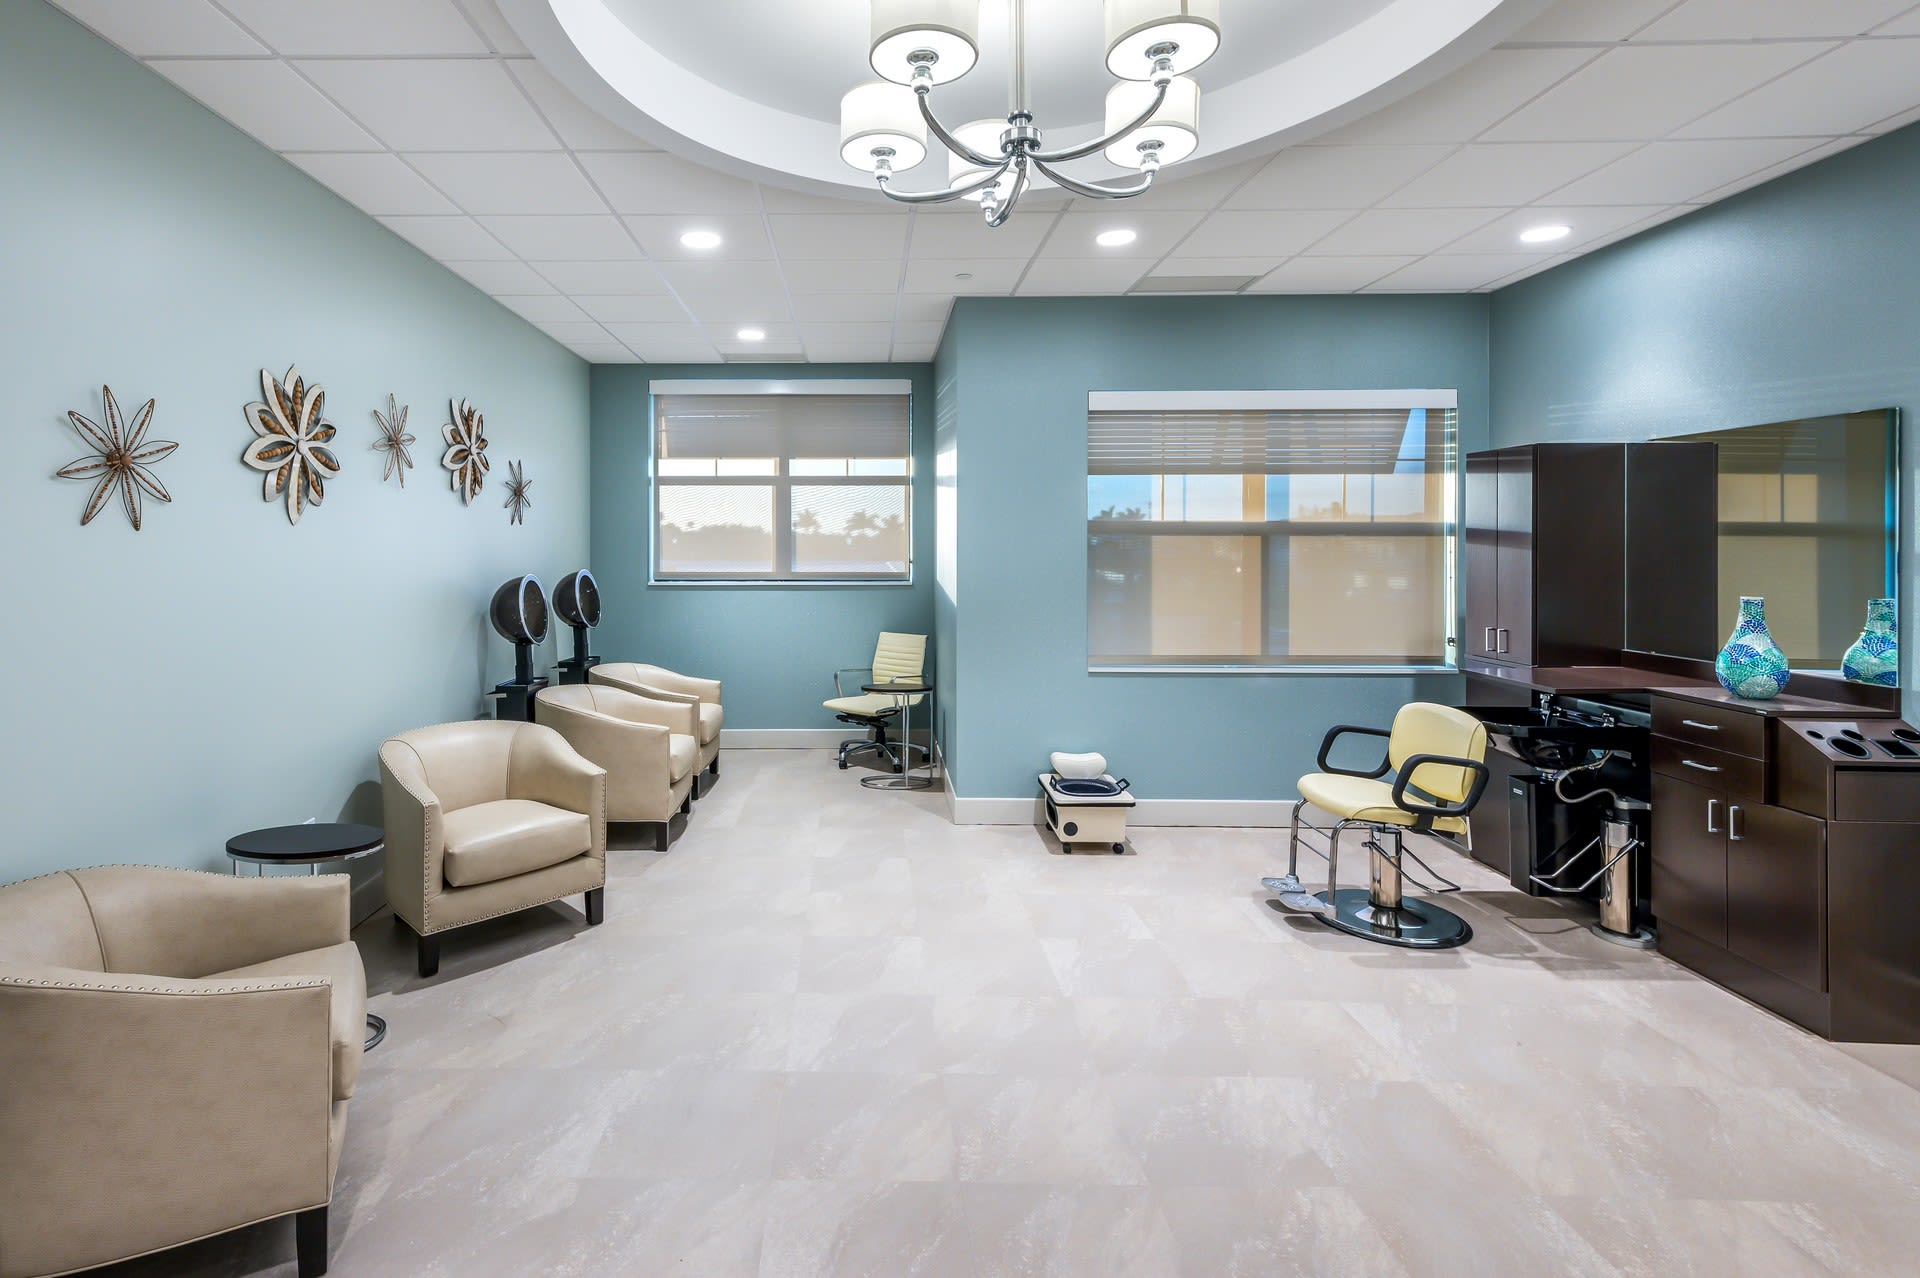 onsite salon at Inspired Living Royal Palm Beach in Royal Palm Beach, Florida